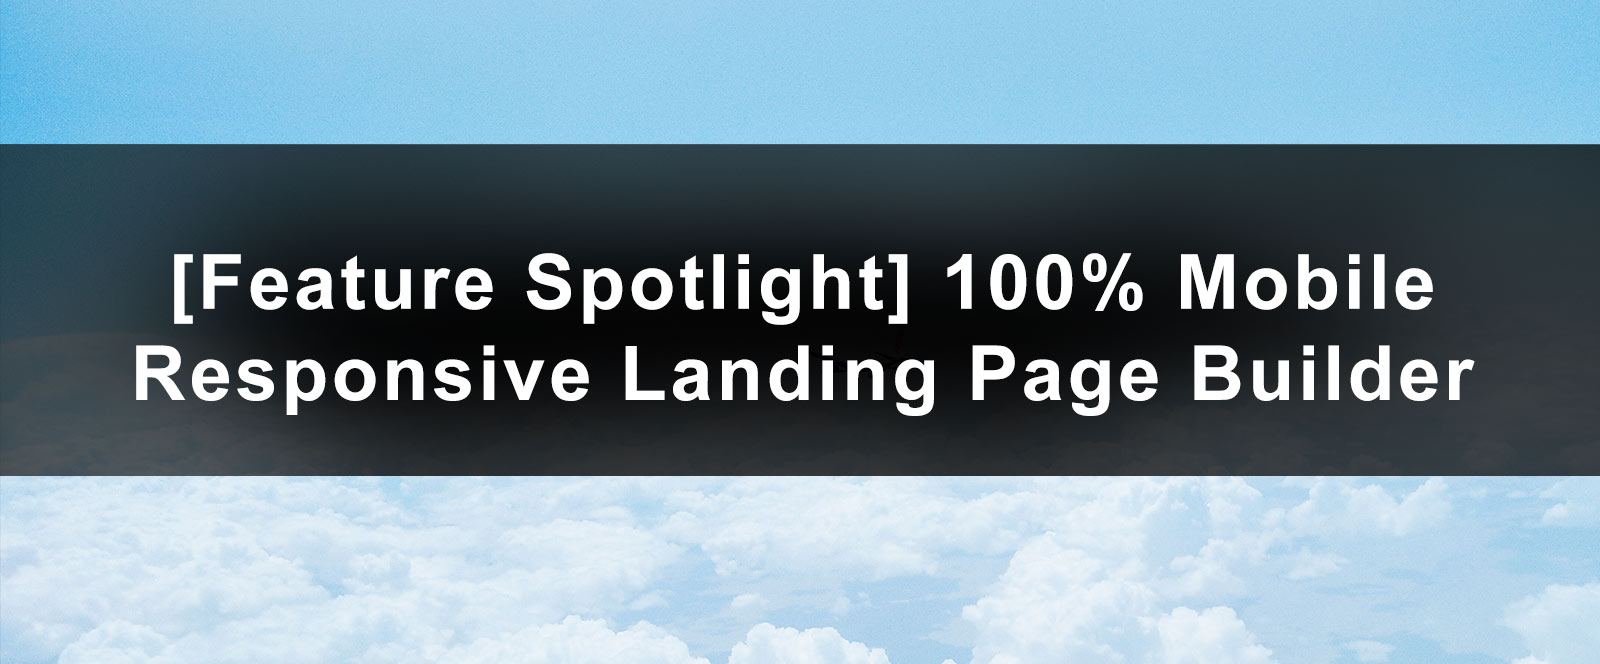 Feature Spotlight: 100% Mobile Responsive Landing Pages